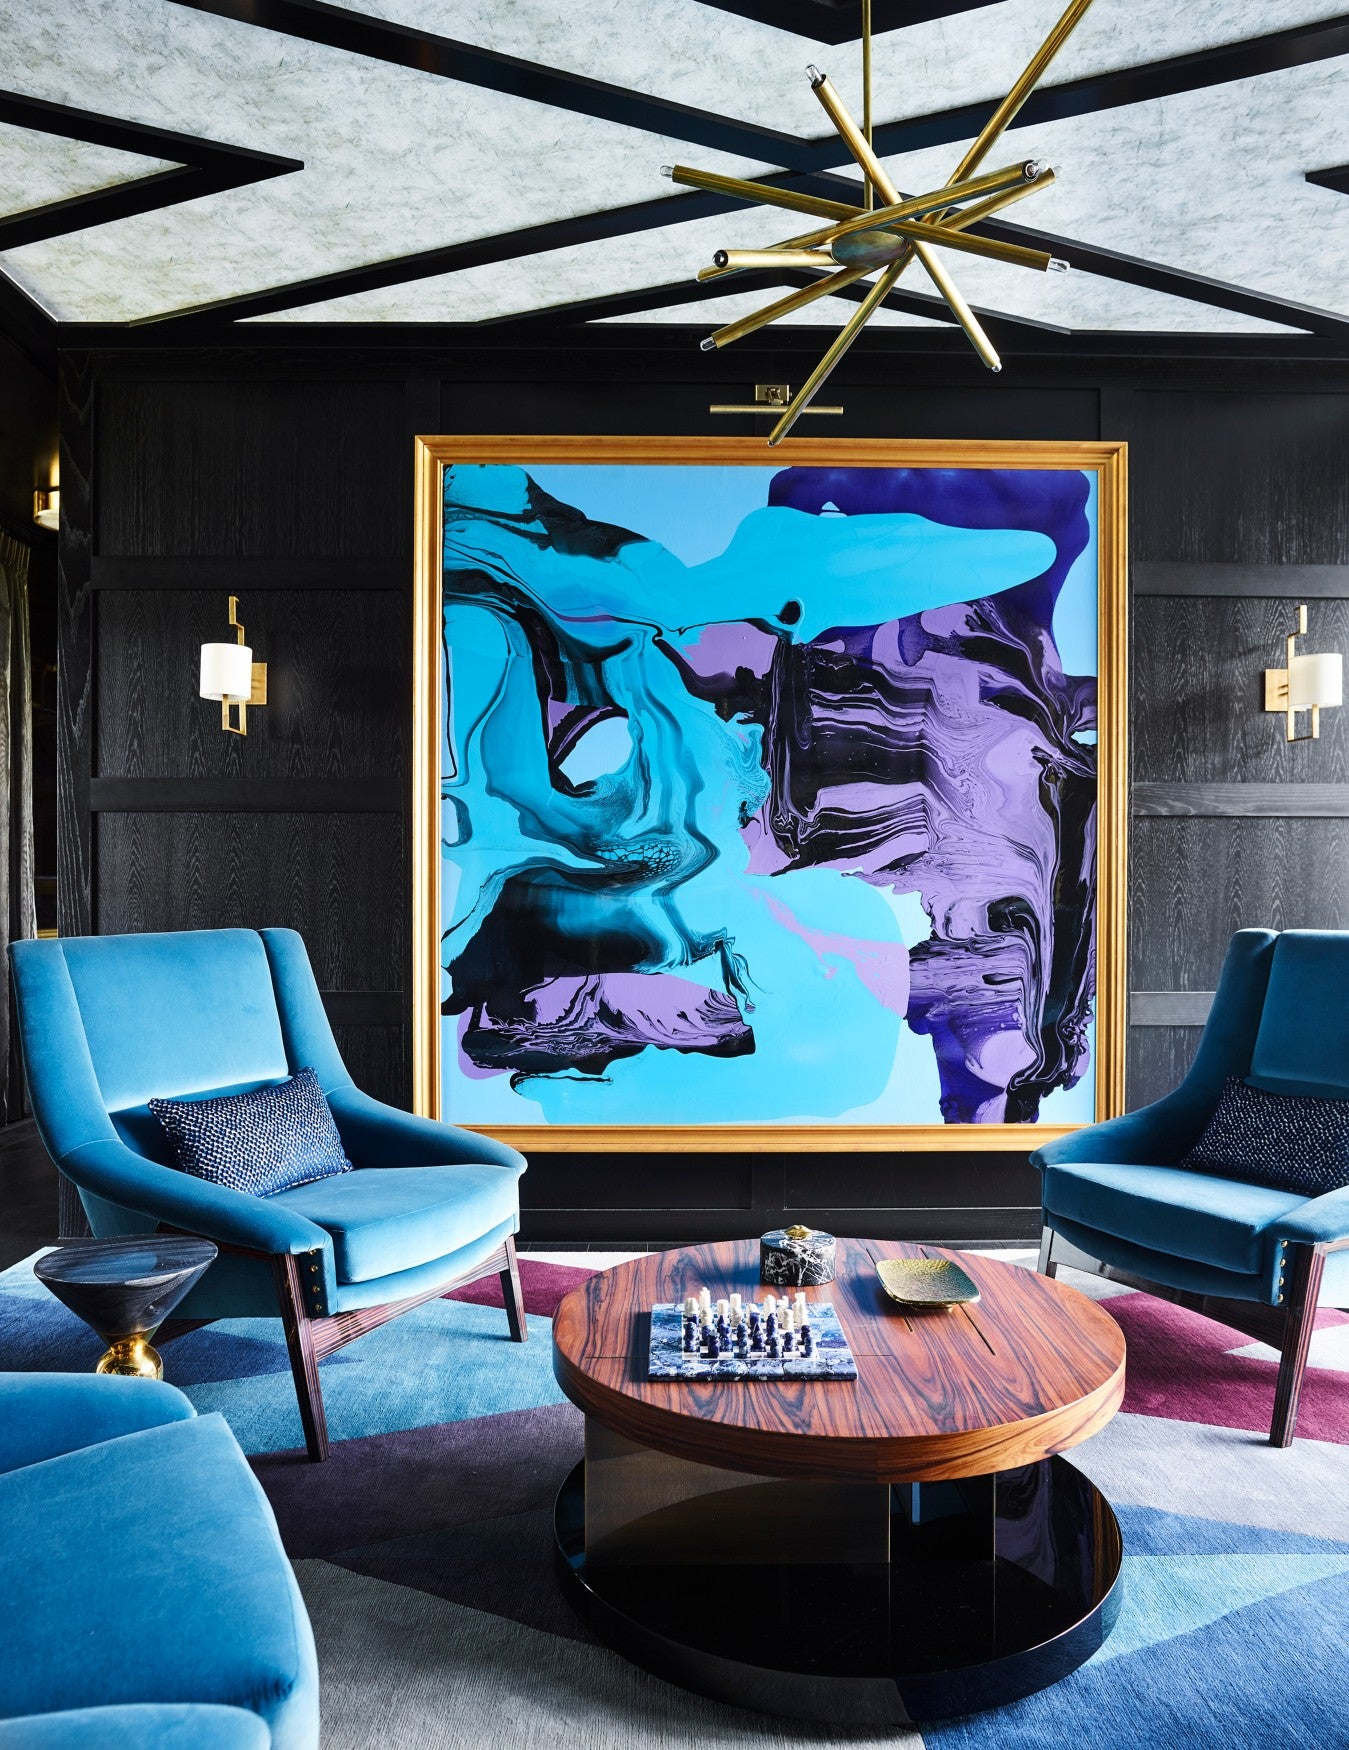 Statement Artwork - 7 Ways To Make a Statement In Your Living Room - LuxDeco.com